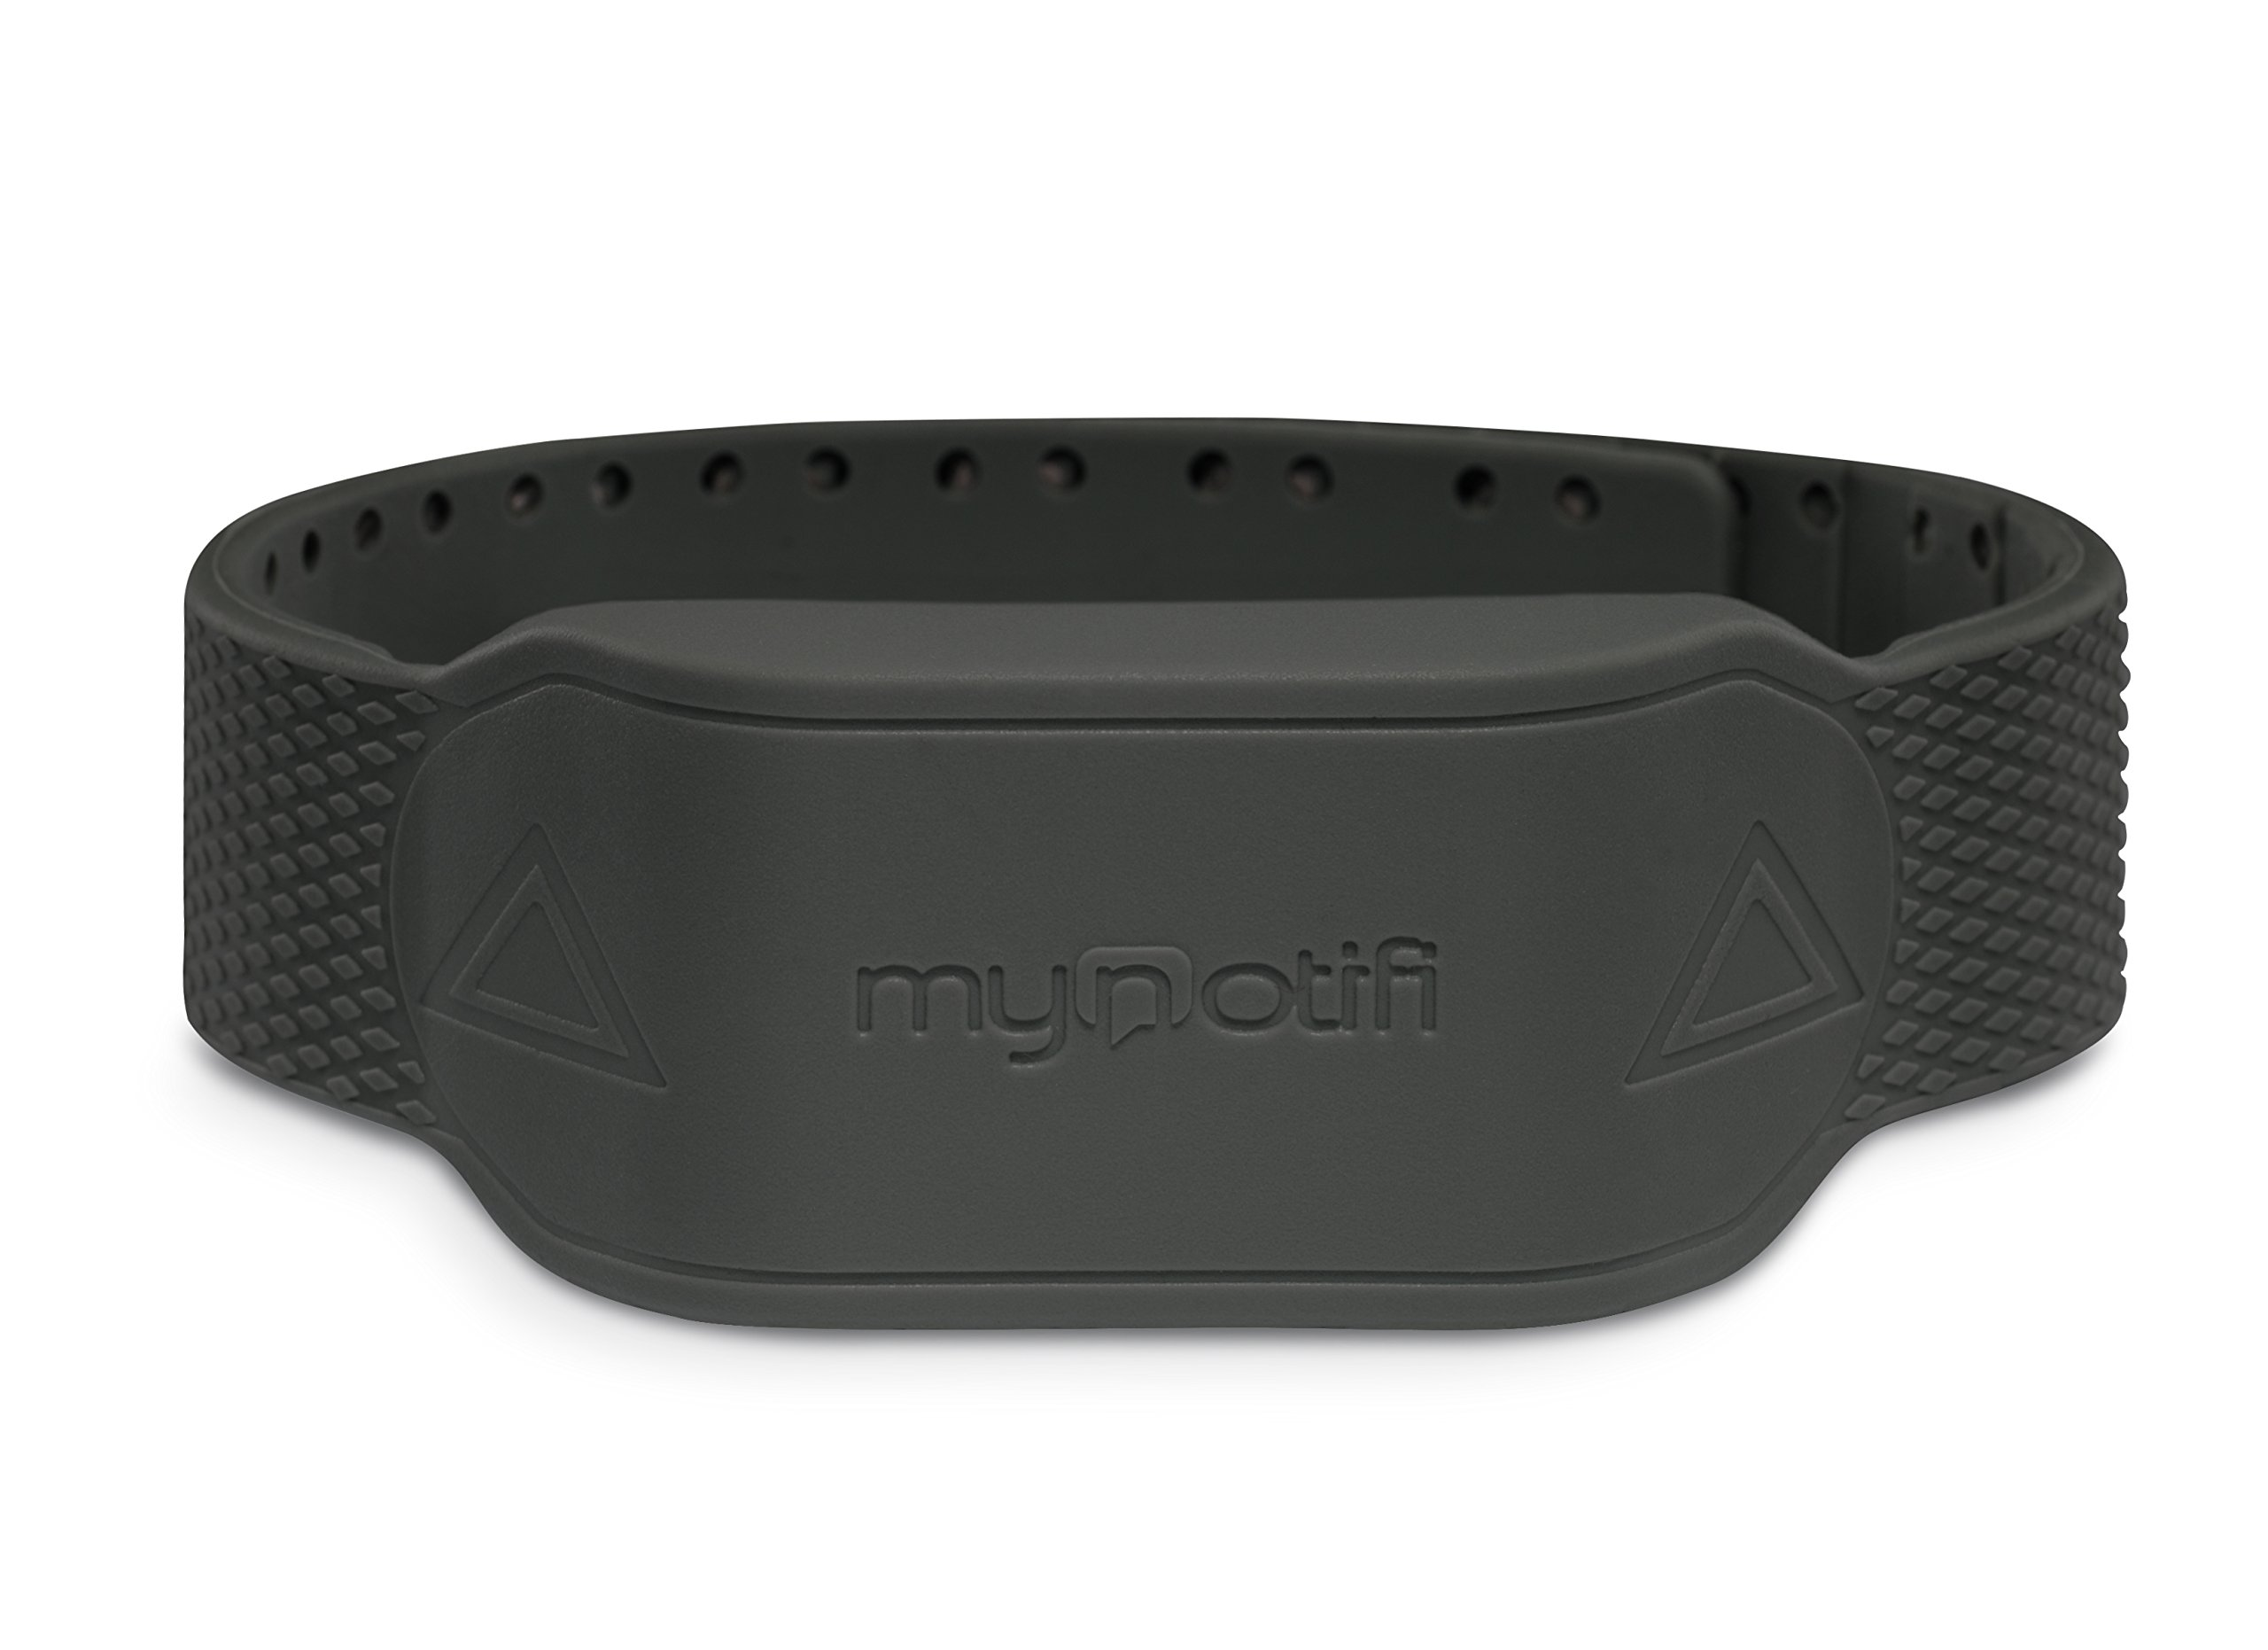 MyNotifi Automatic Fall Detection Wearable - No Call Center, No Monthly Fees - Alerts Family and Friends - Medical Alert System for Seniors by MyNotifi (Image #5)